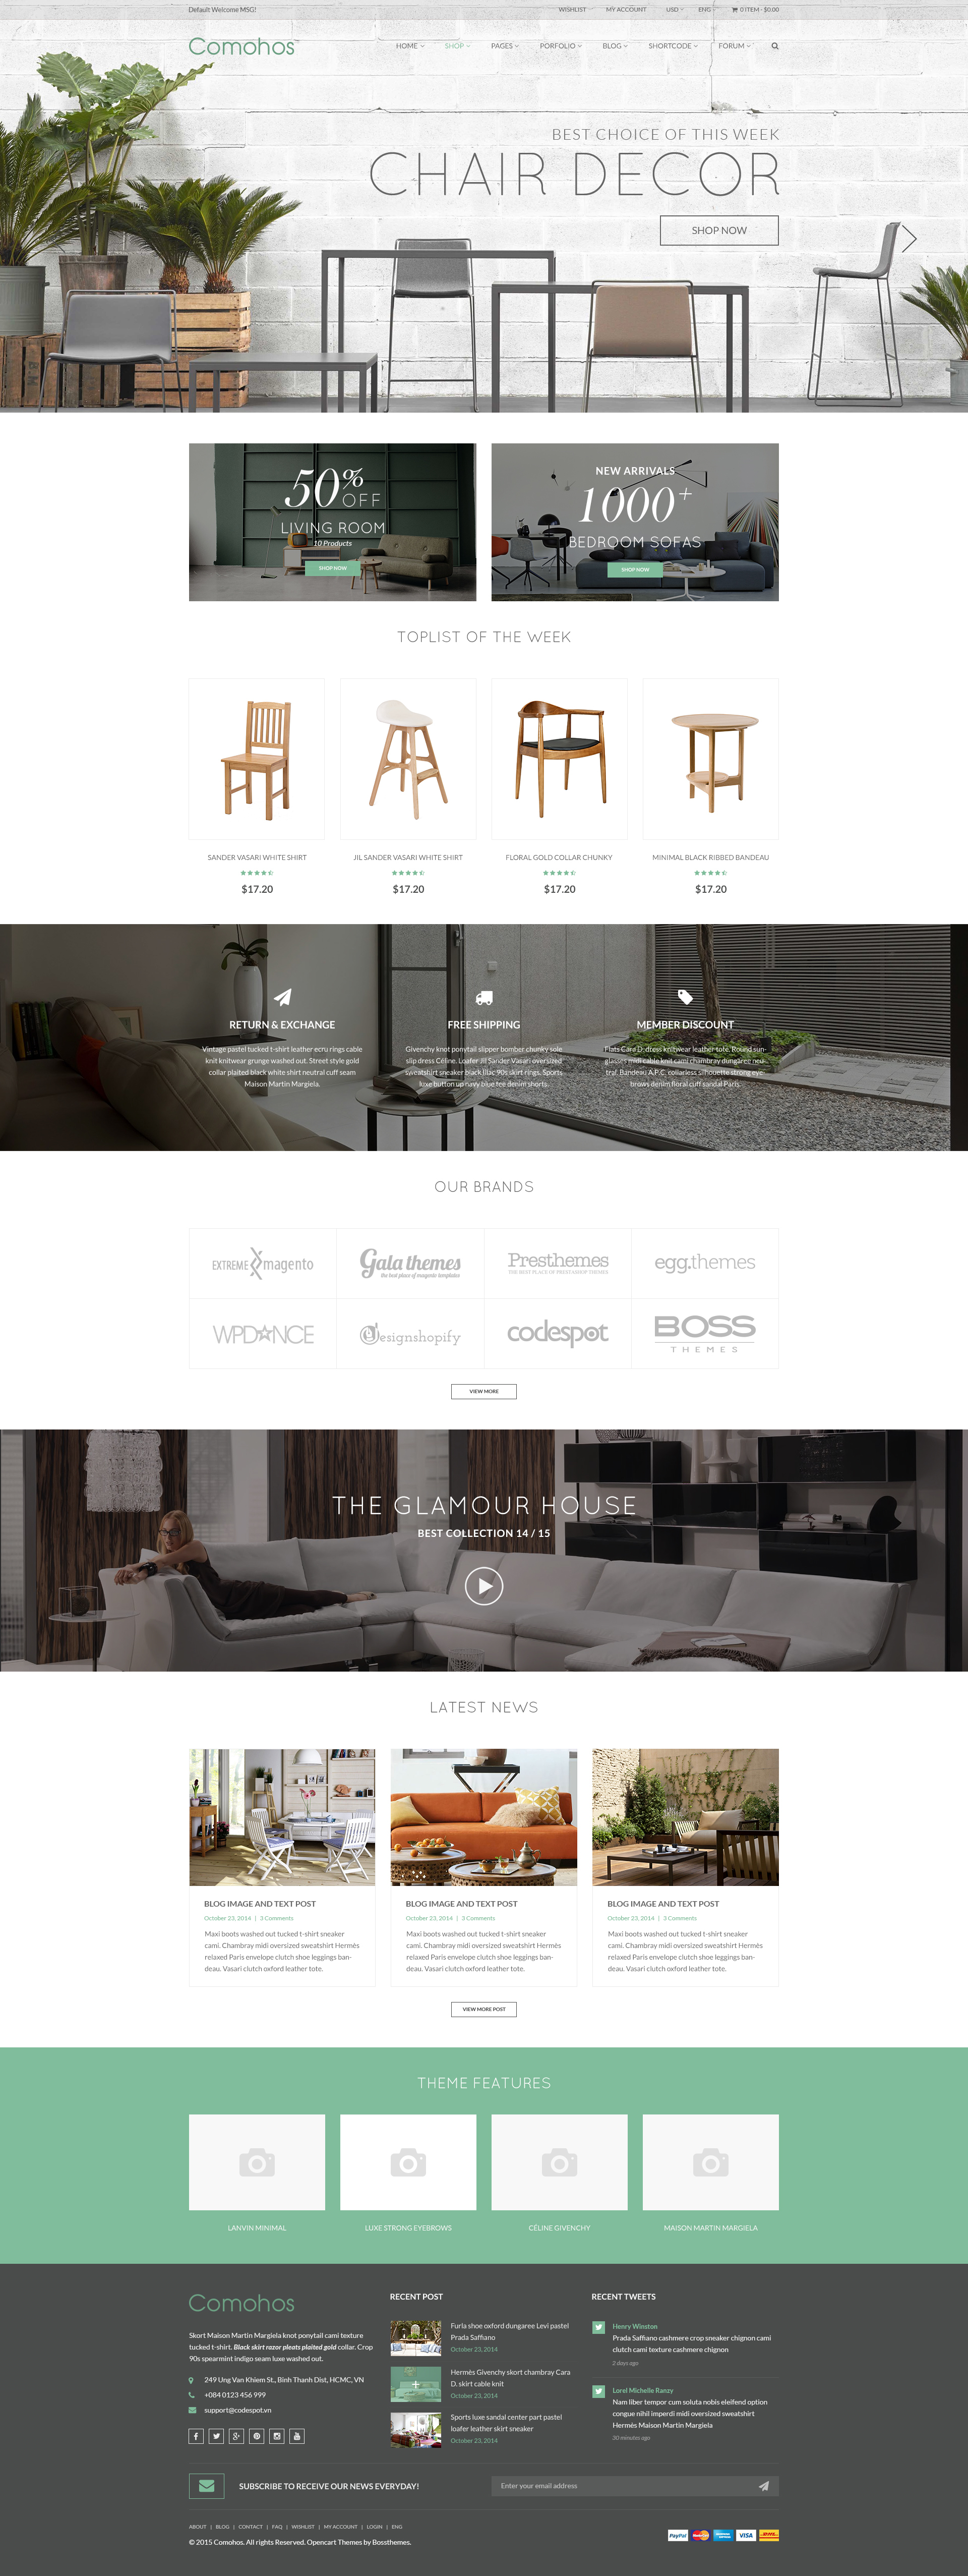 Comohos - MultiPurpose eCommerce HTML5 Template by tvlgiao ...